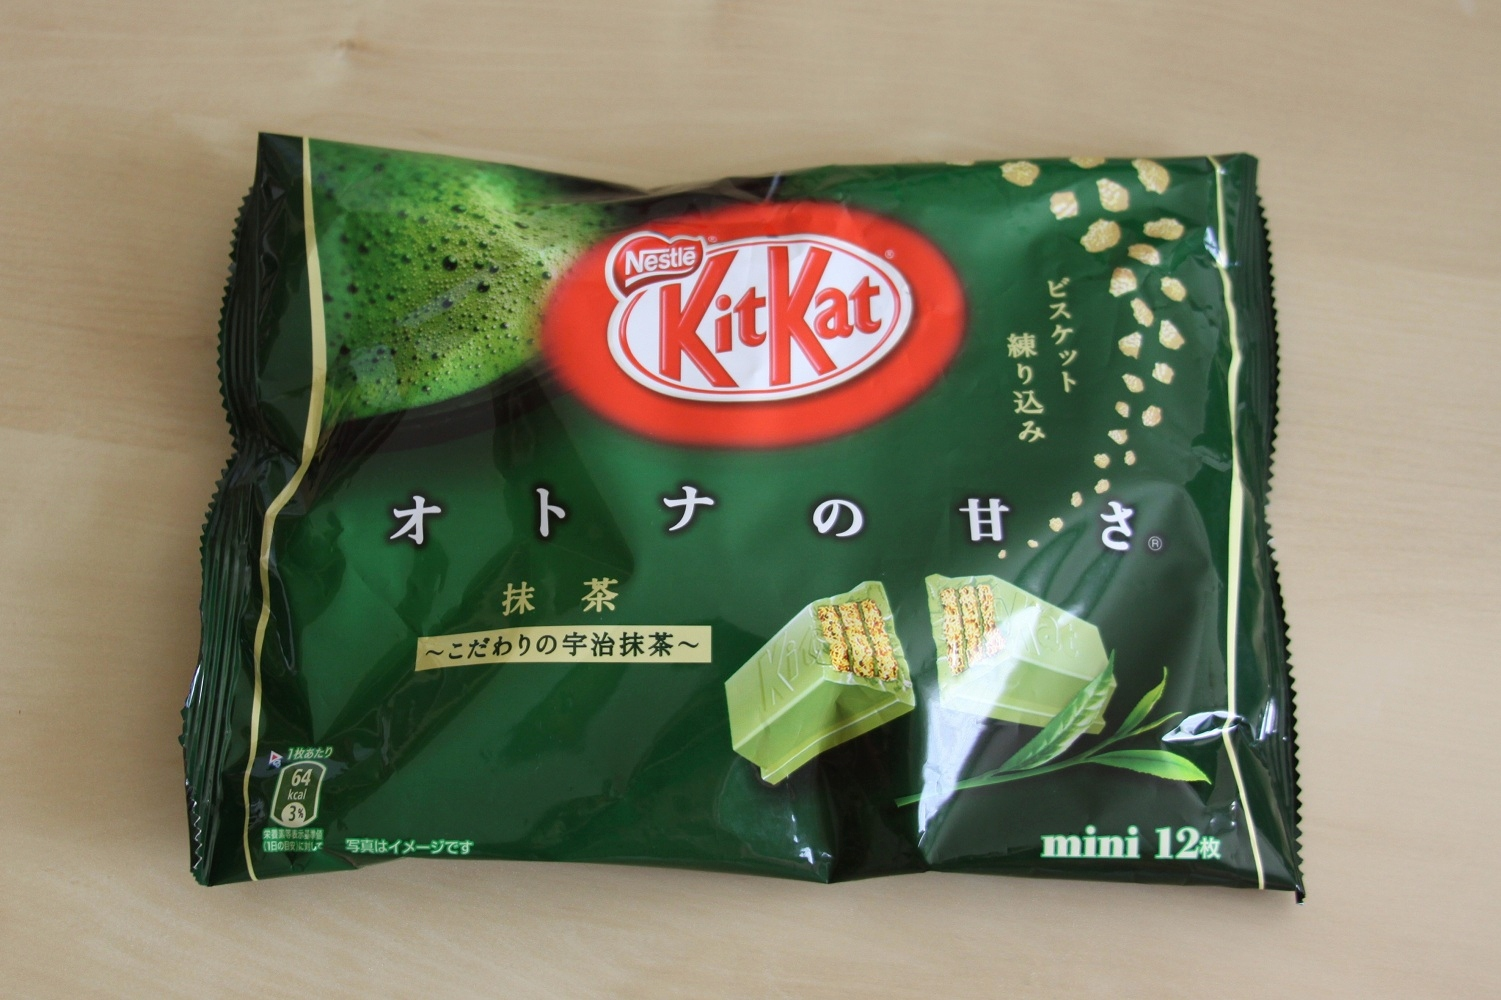 Jewel Me Love Green Tea Kit Kat Kitkat I Found This At My Local Mitsuwa Market And Knew Had To Take It Home